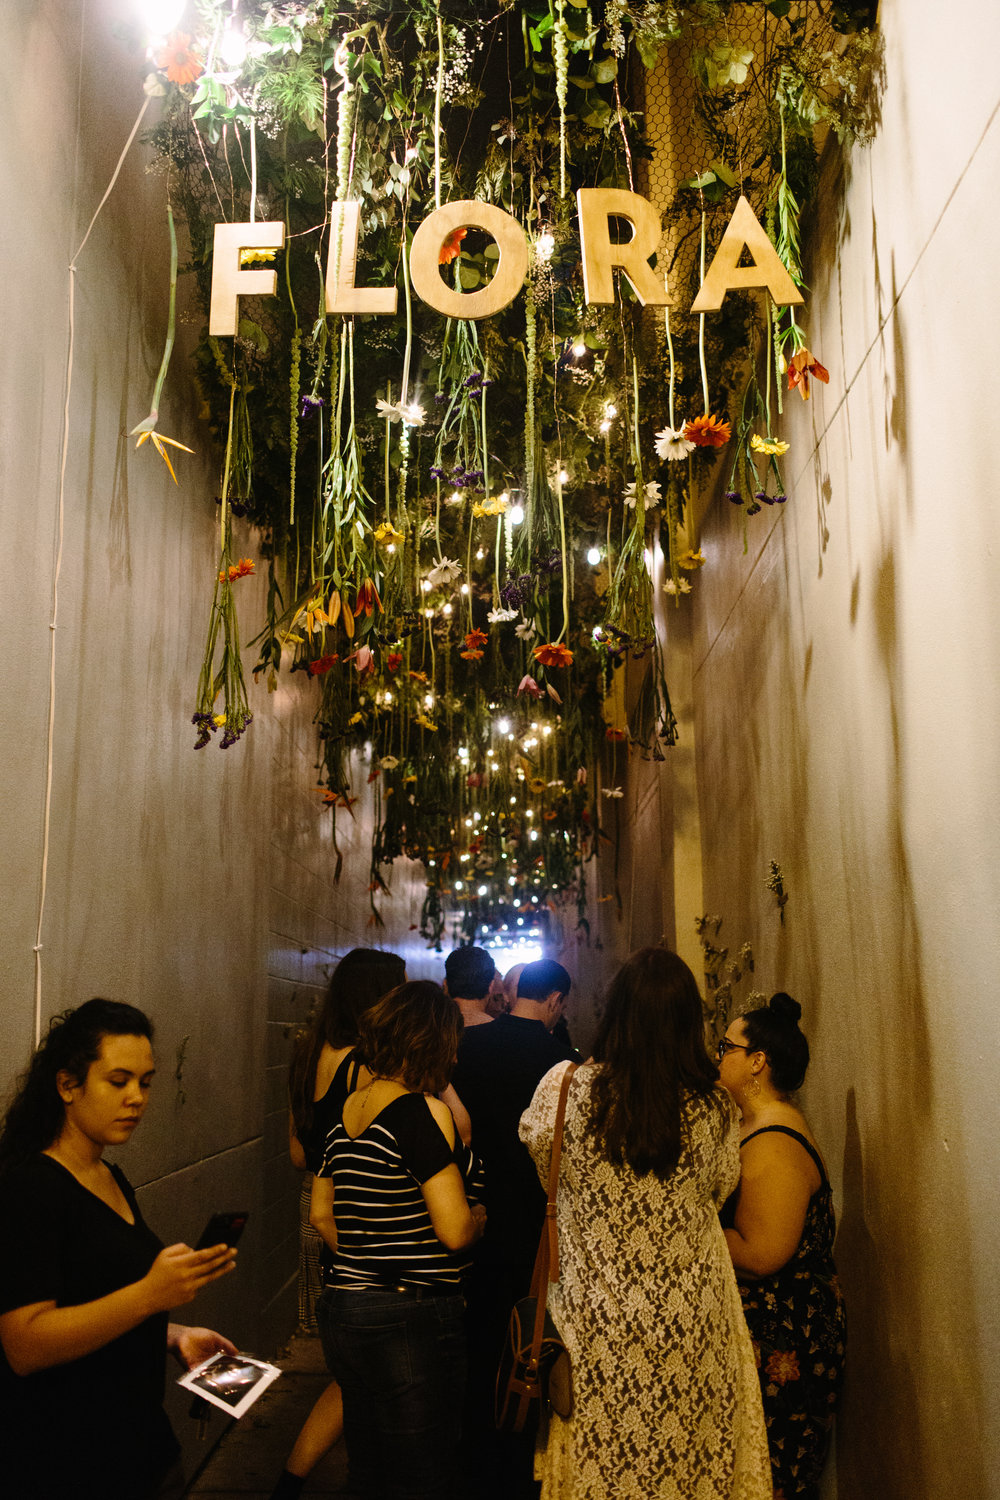 Hundreds of real flowers bring this alleyway to life as part of the Flora installation by Andre Bohrer. (photo : Jesse Walsh) Download  here .